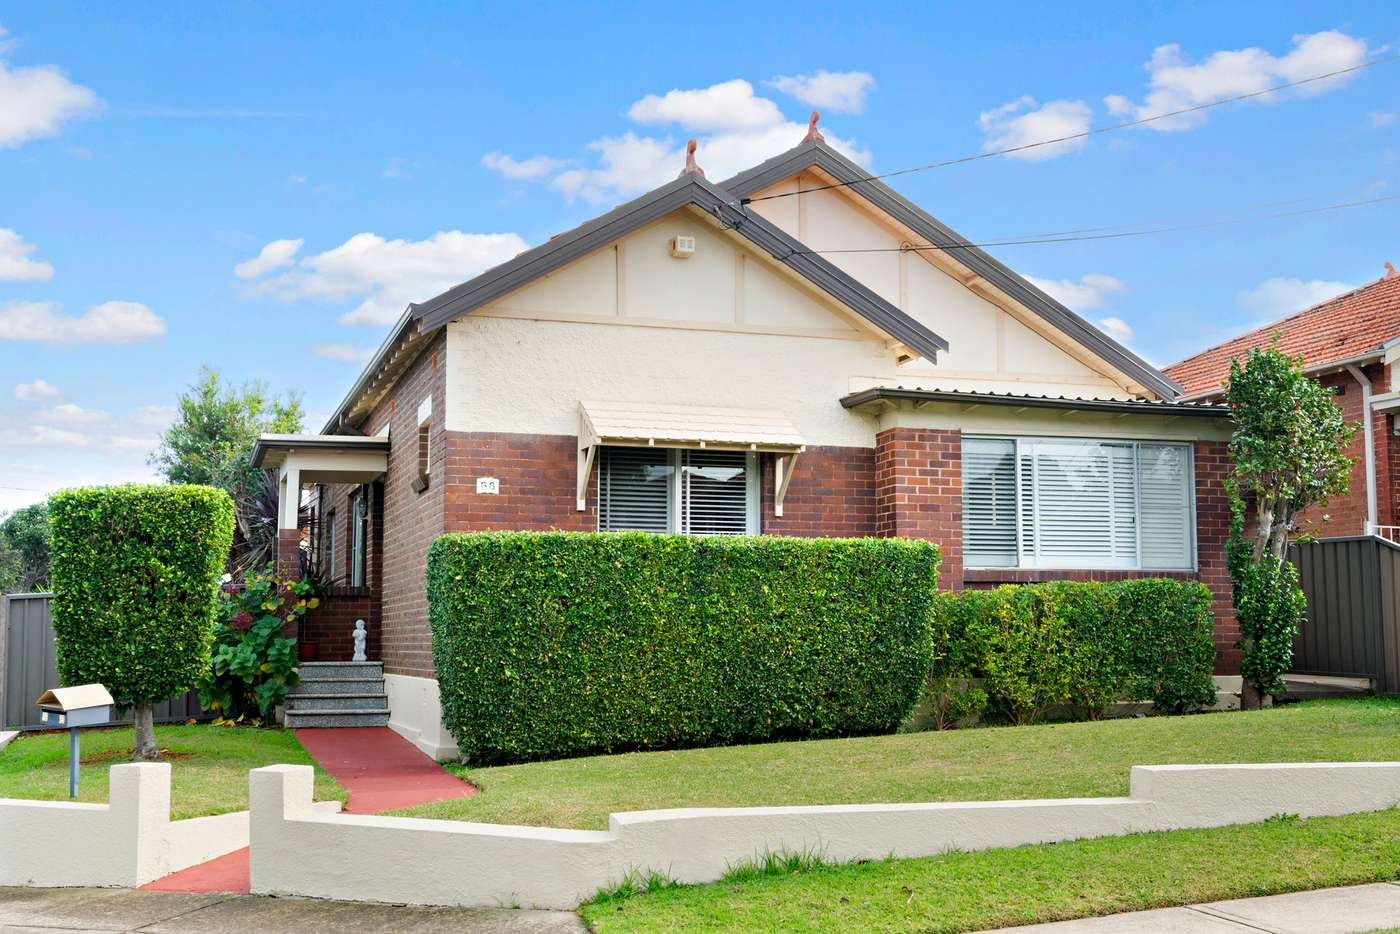 Main view of Homely house listing, 66 Flavelle Street, Concord NSW 2137